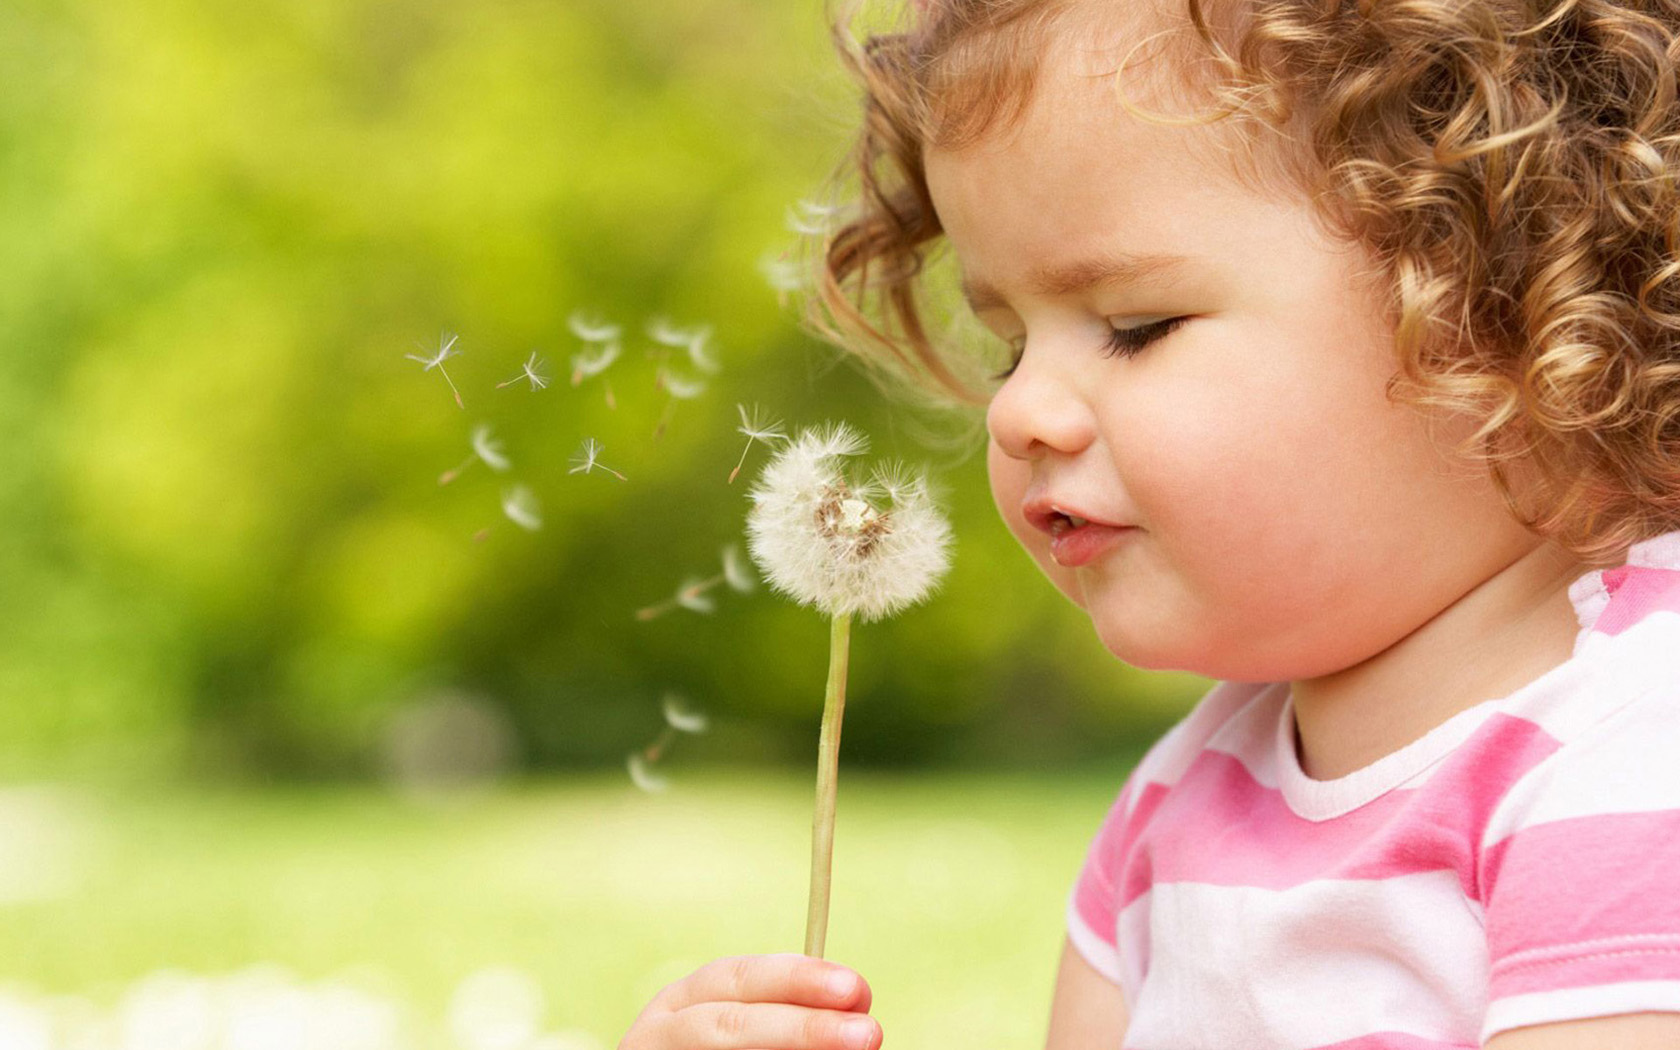 Blowing Dandelion Wallpaper Cute child blowing dandelion